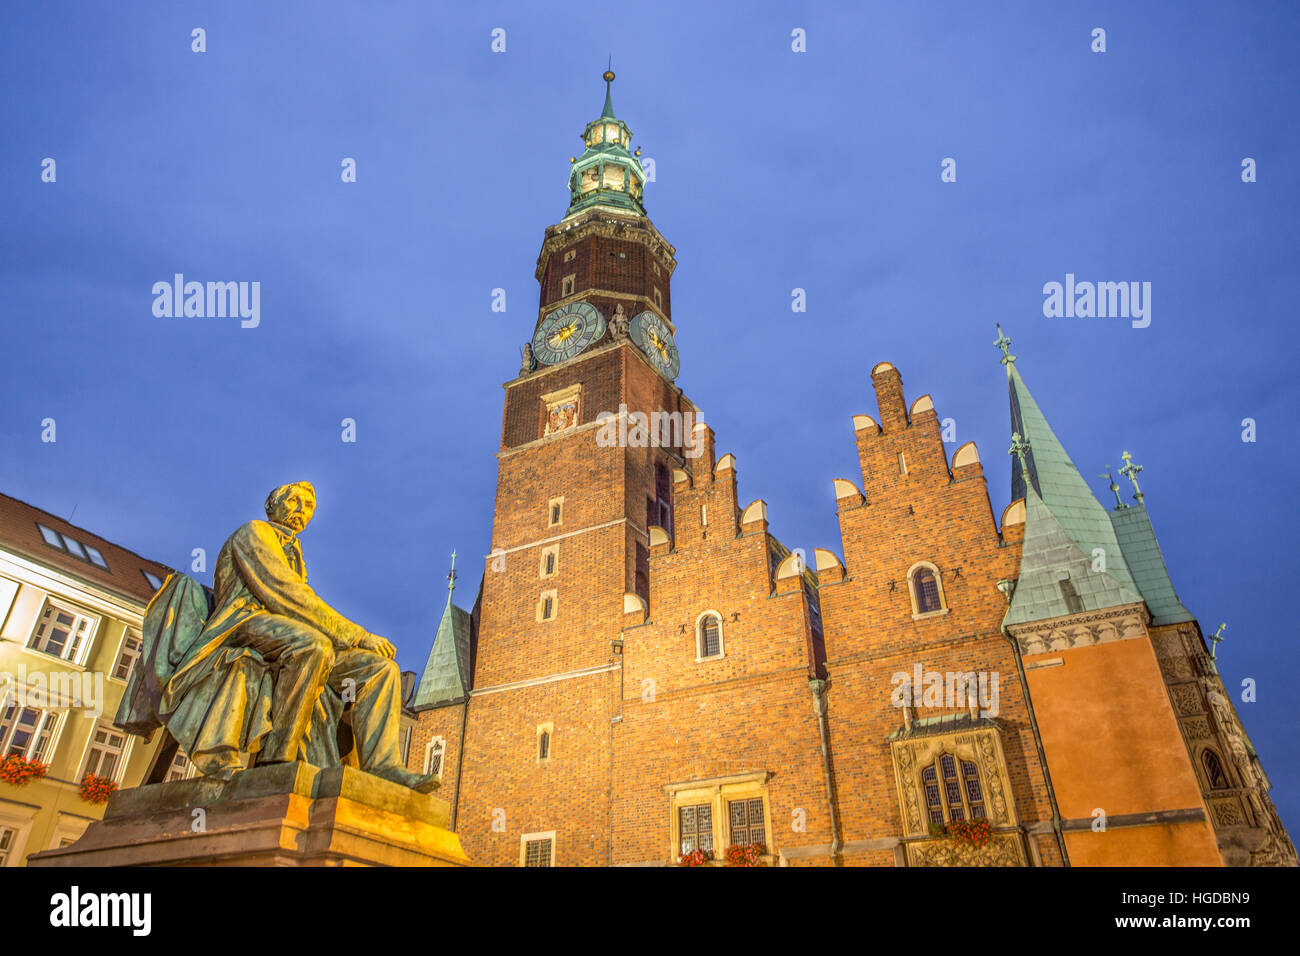 Town Hall in Wroclaw City by night - Stock Image